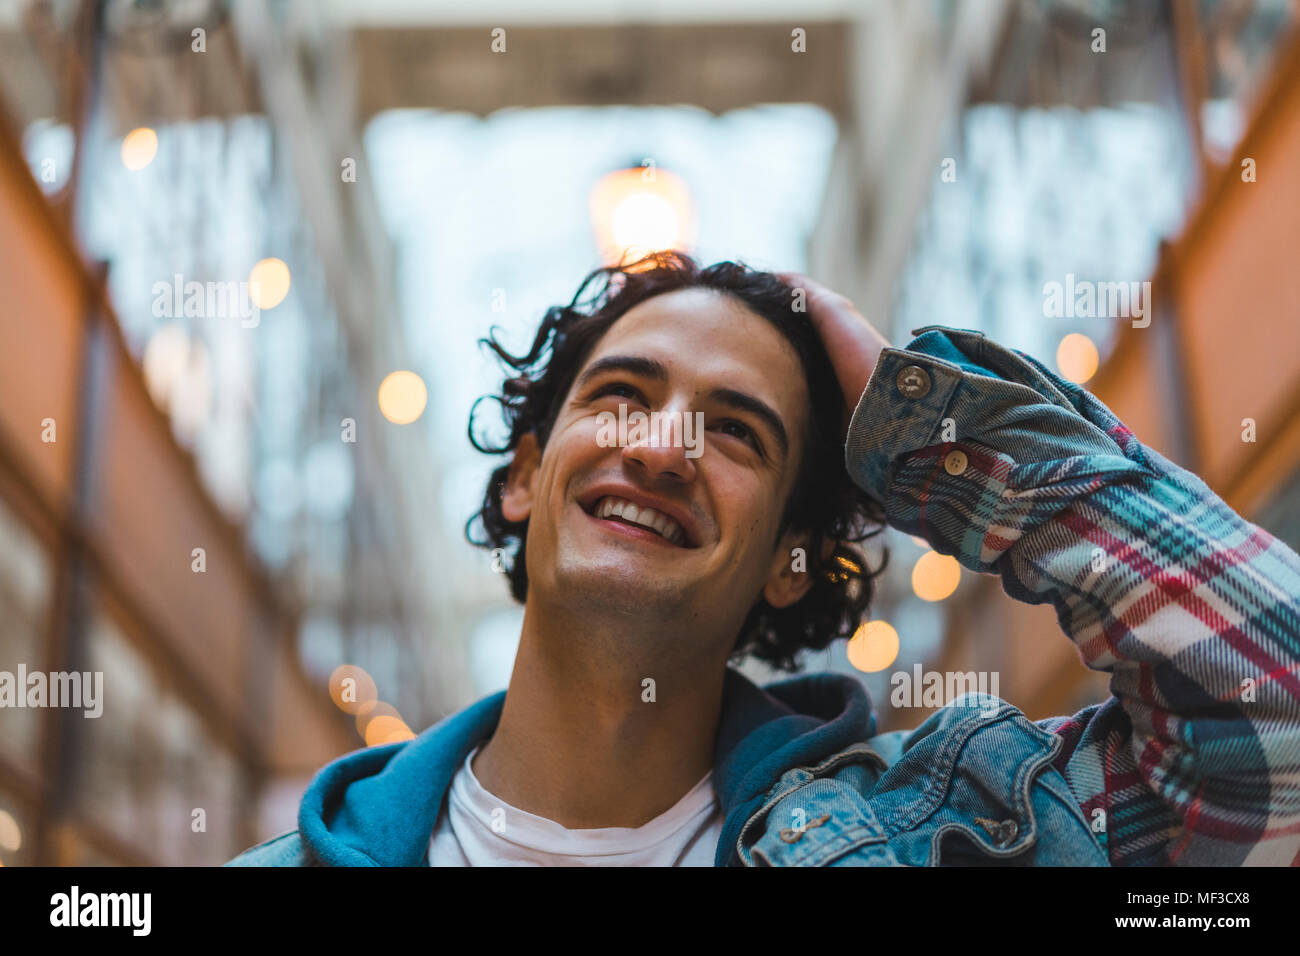 Portrait of smiling young man in shopping centre - Stock Image